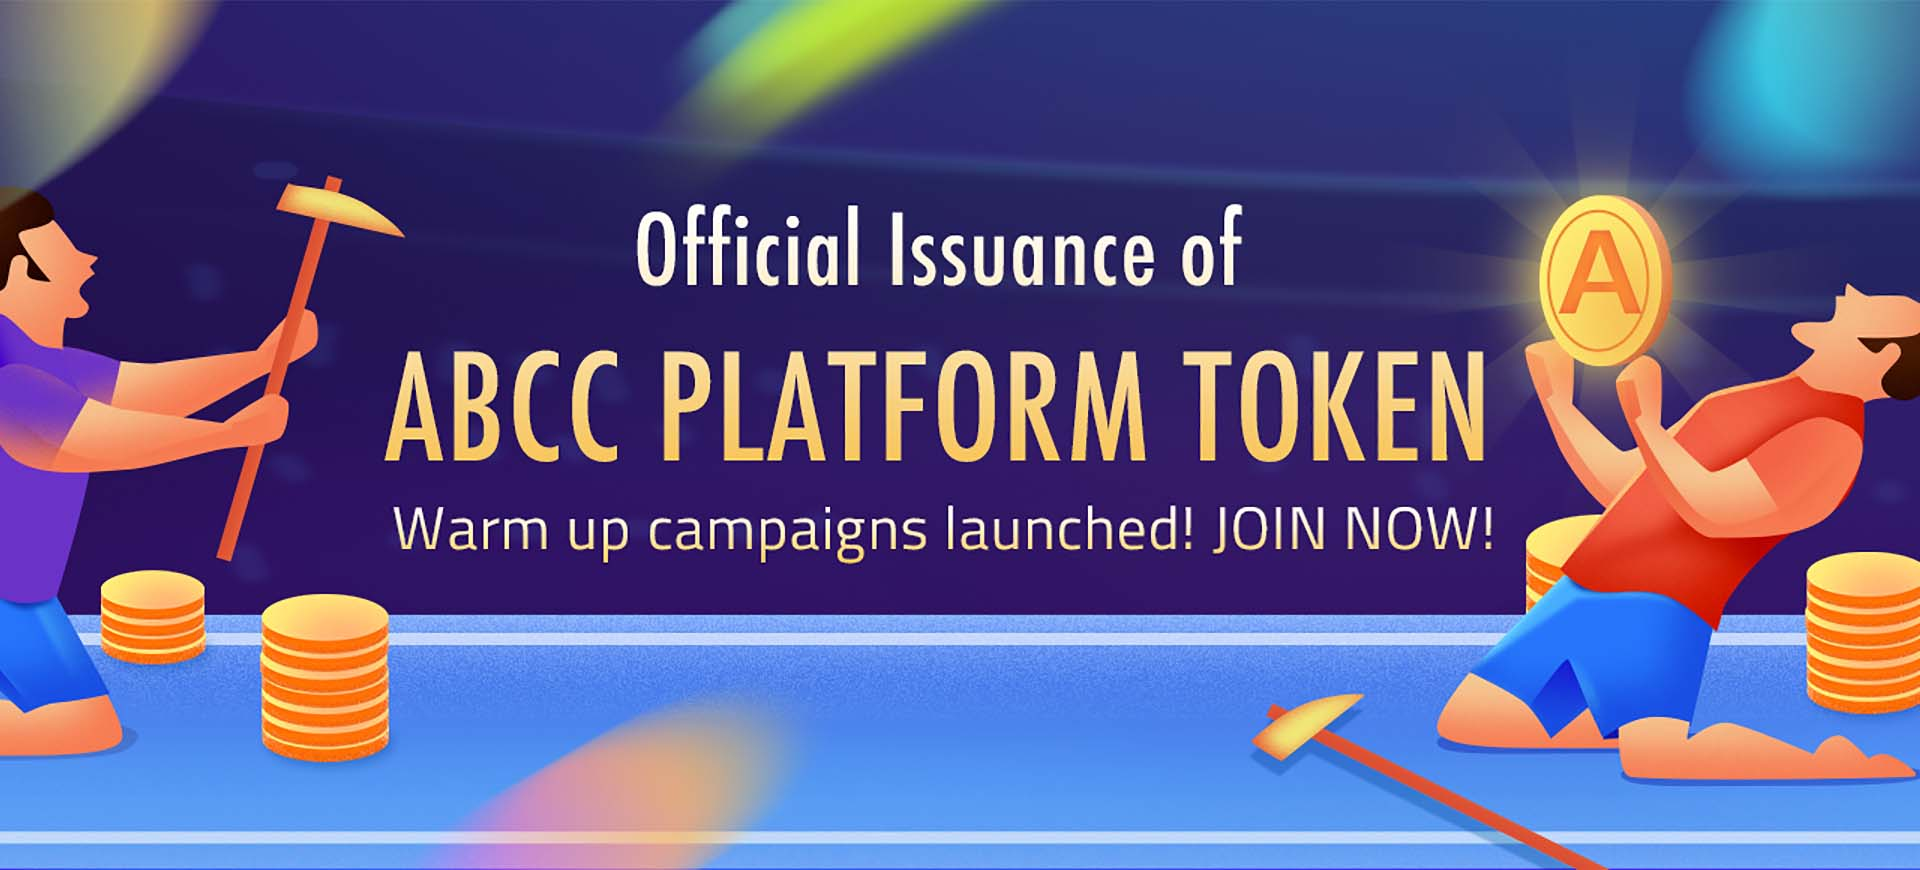 Leading Crypto Exchange Platform ABCC to Launch Own Cryptocurrency Token and Referral Program